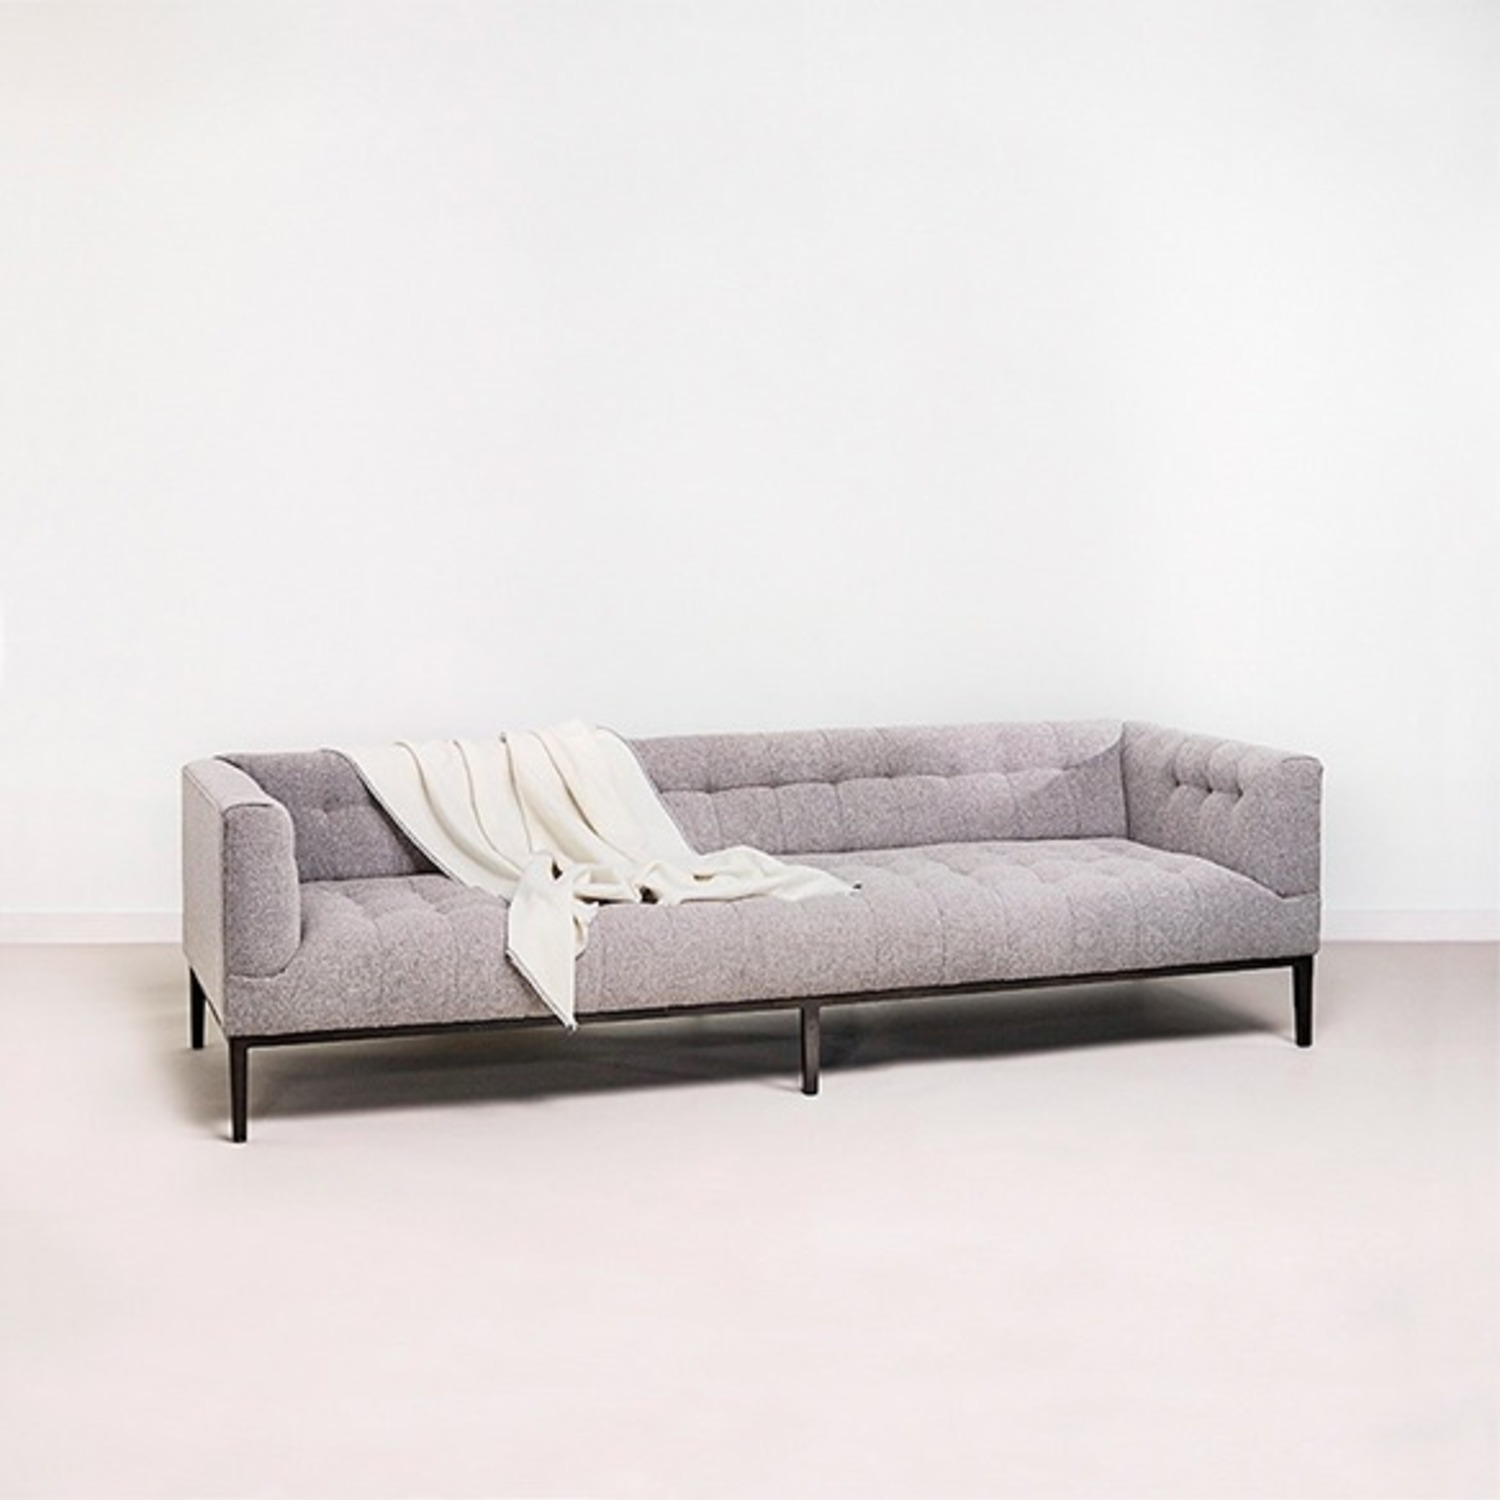 Feather Monarch Sofa - image-3